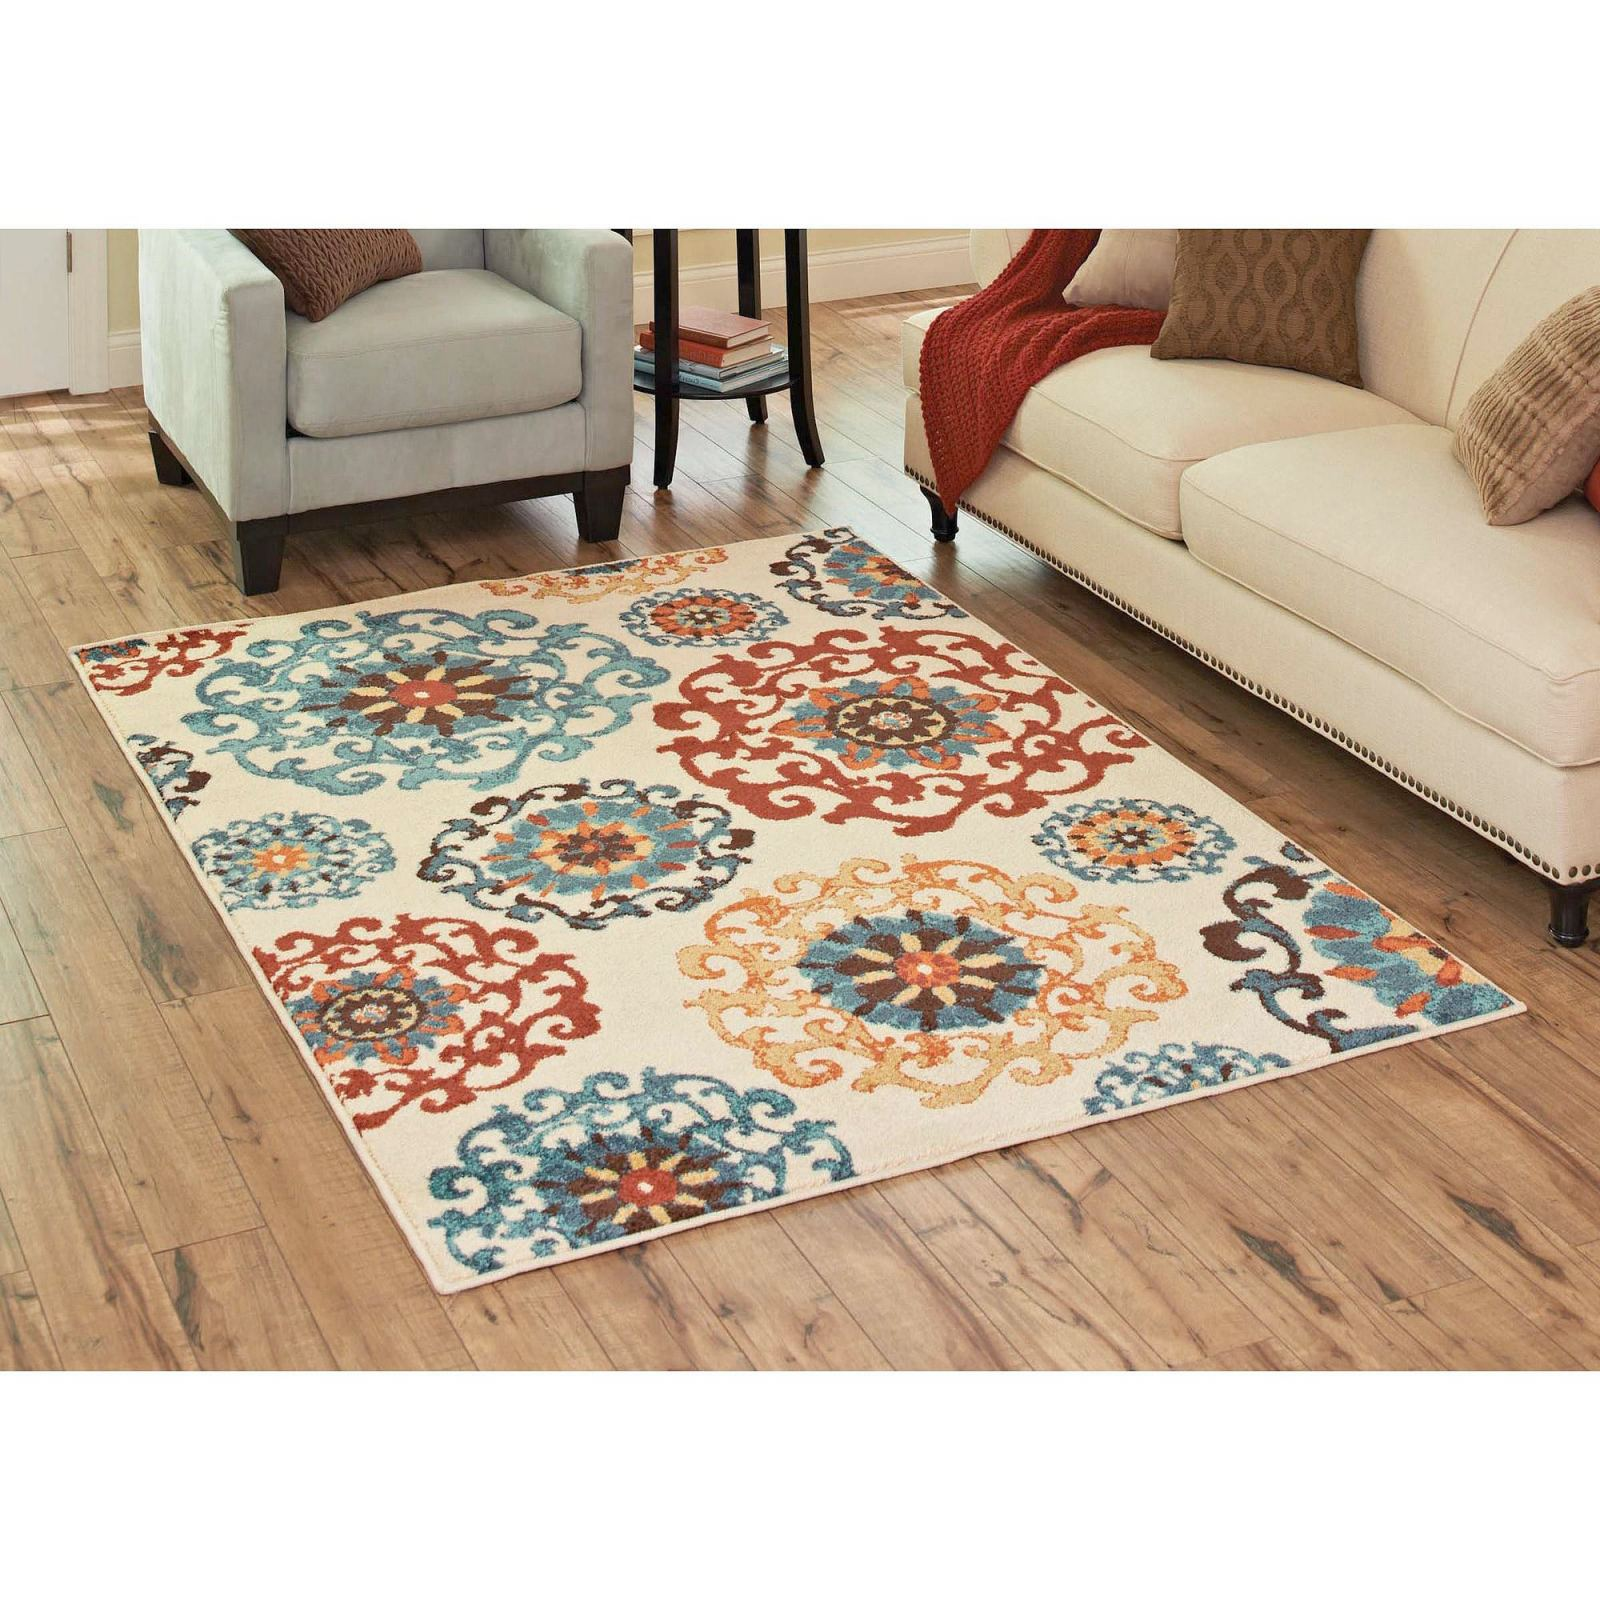 Clearance rugs photo 1 of 3 full size of living room:8x10 area rugs lowes clearance XPLSSER